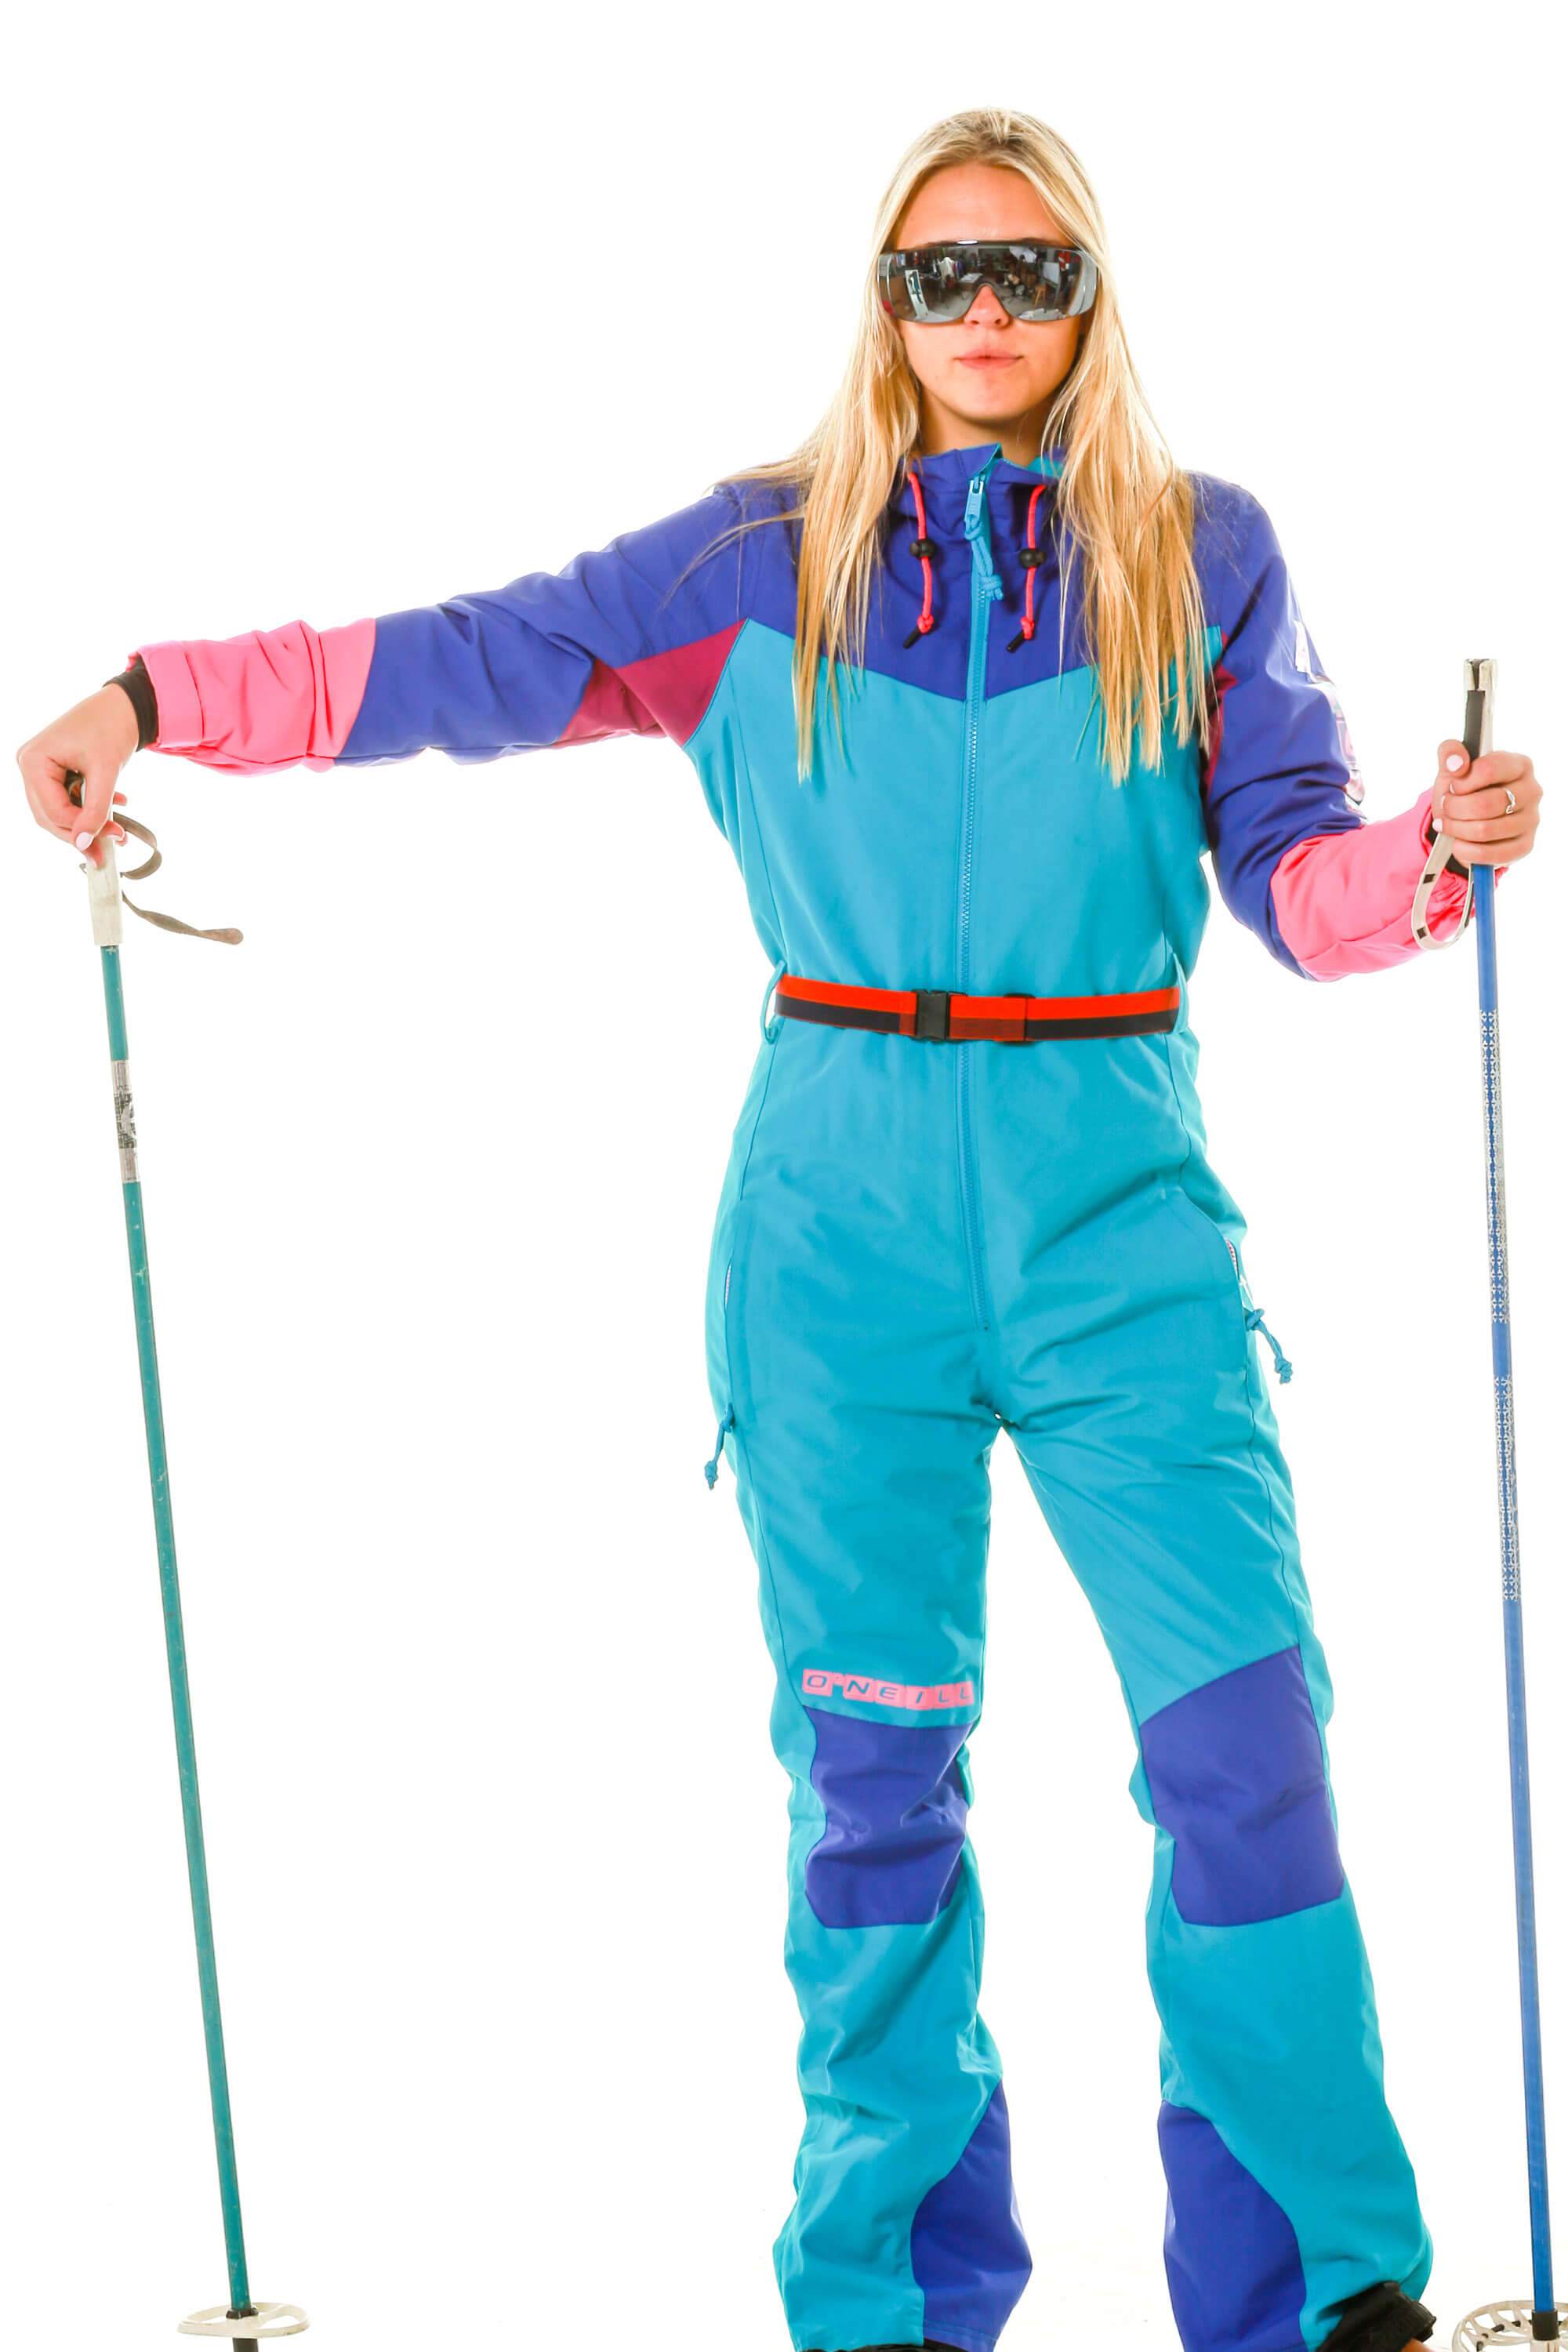 80s Retro Women S Blue And Purple Ski Suit The Teal